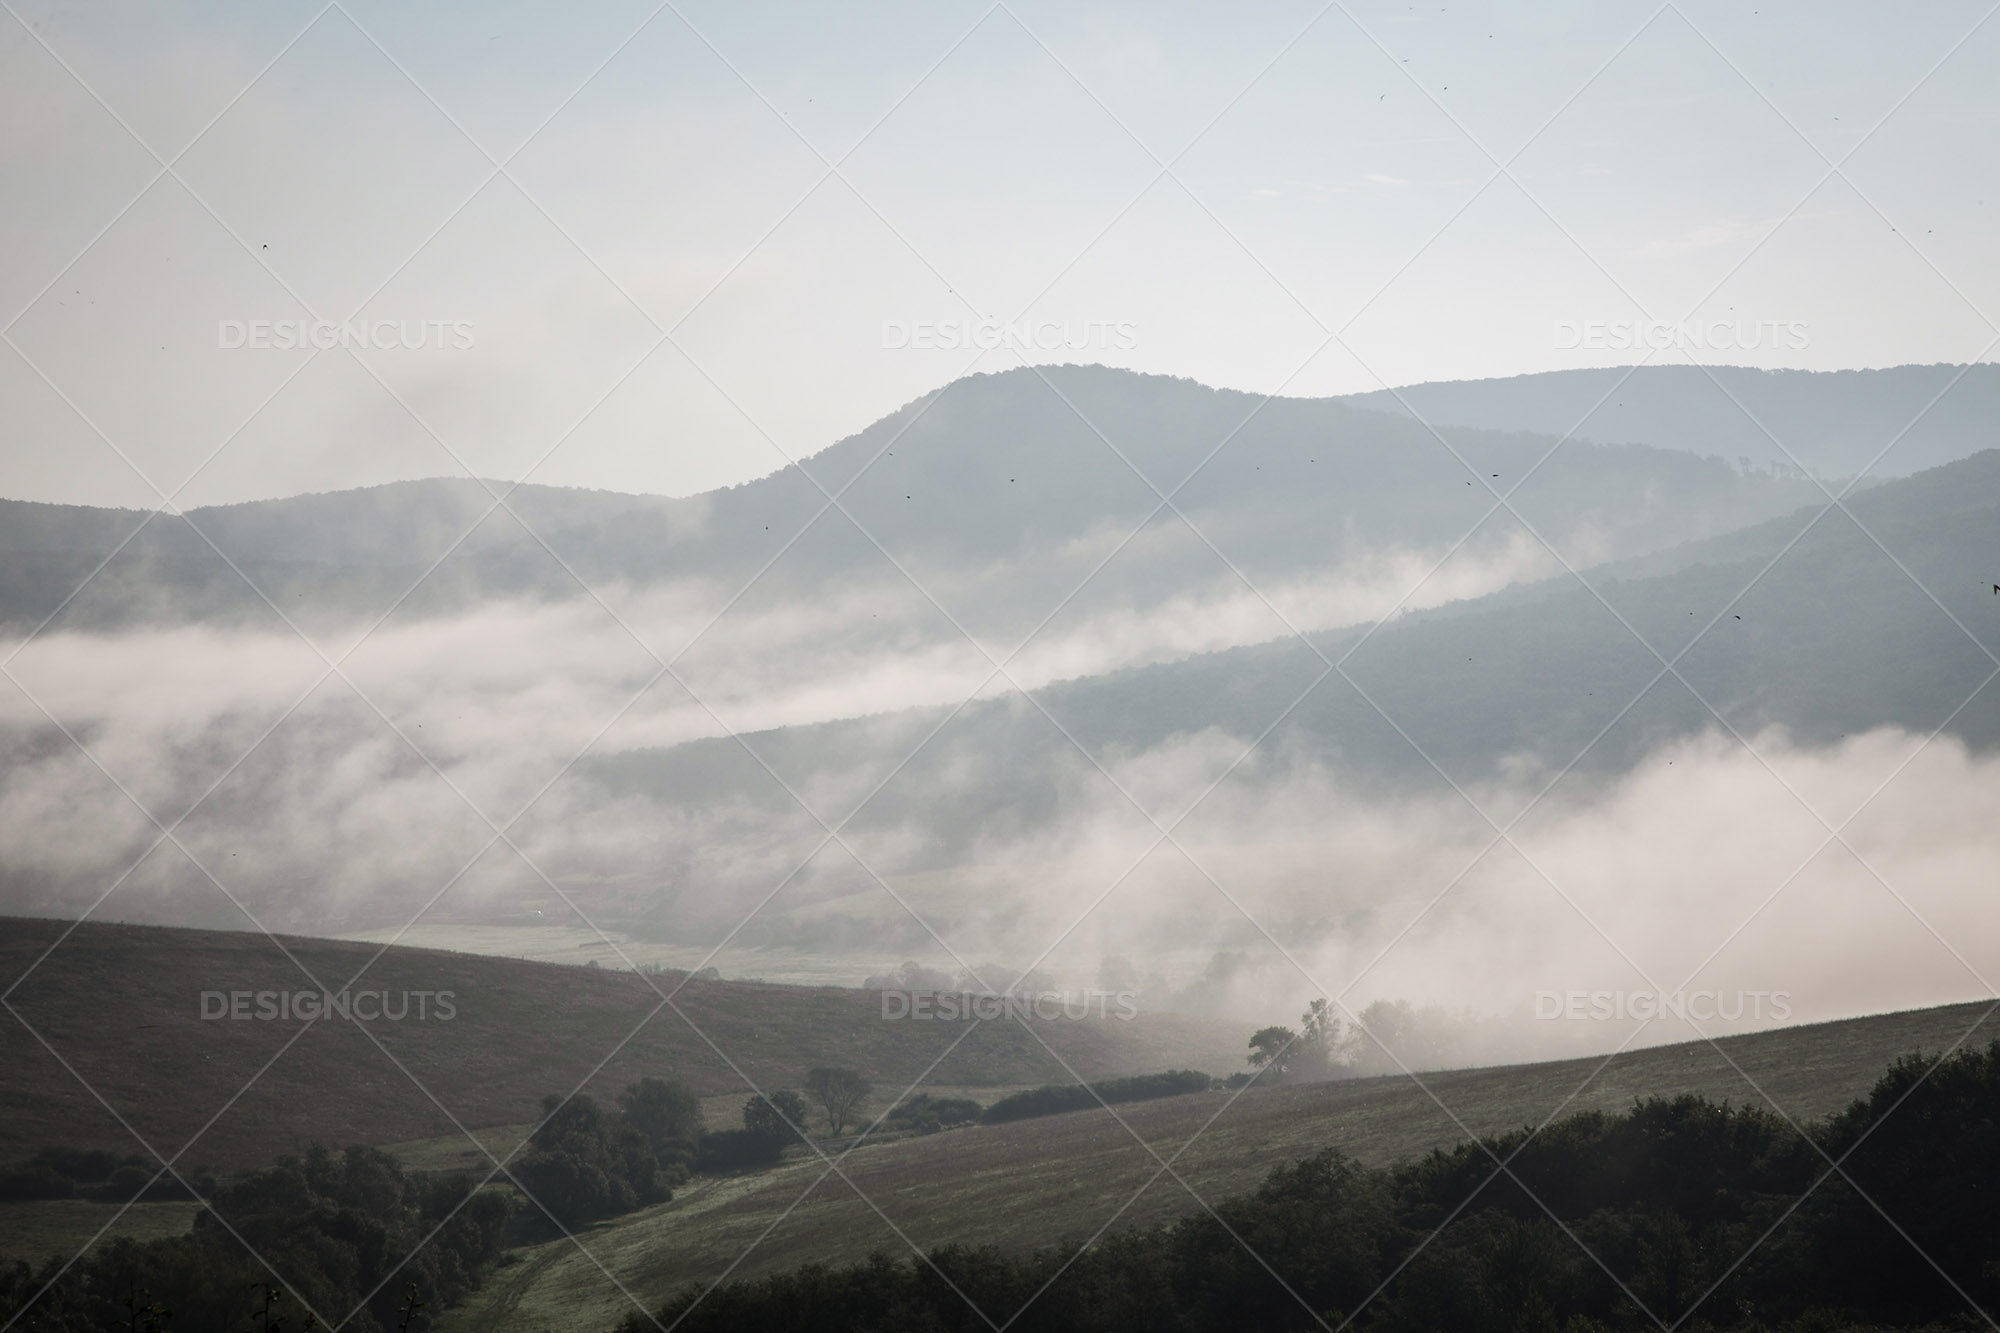 Mist Clearing In The Valleys Around Holloko In Hungary 9